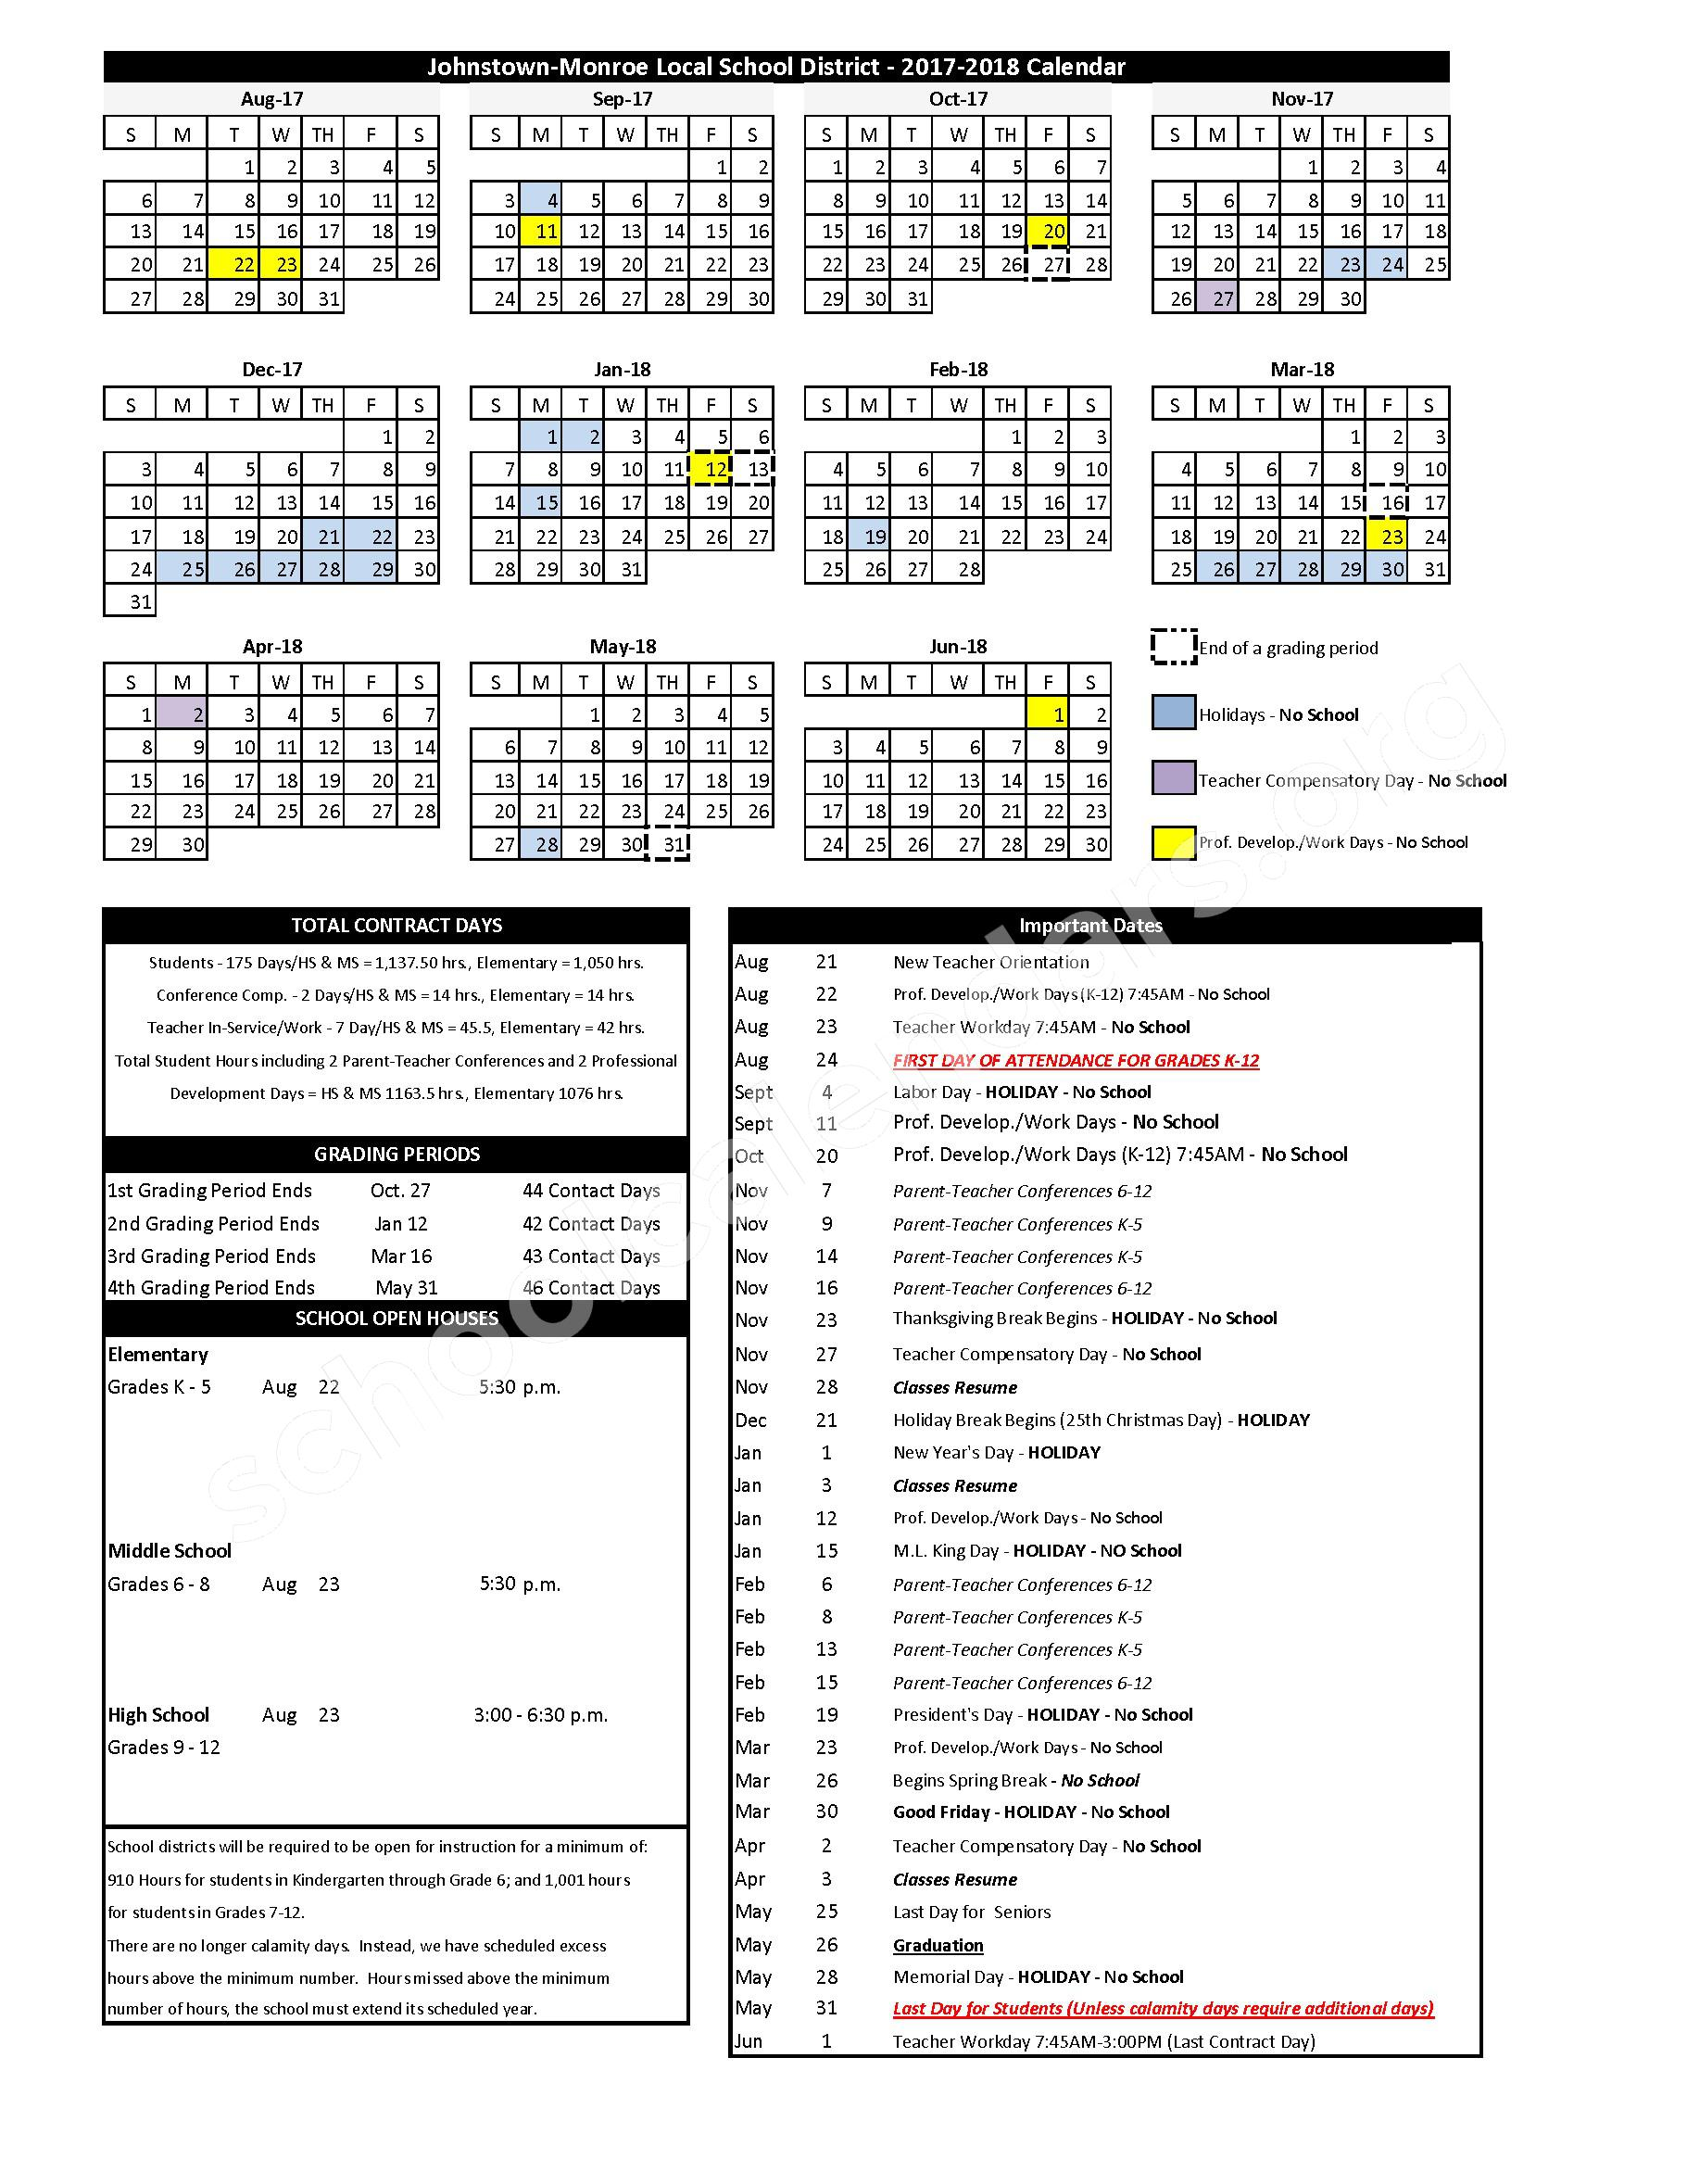 2017 - 2018 School Calendar – Johnstown-Monroe Local School District – page 1